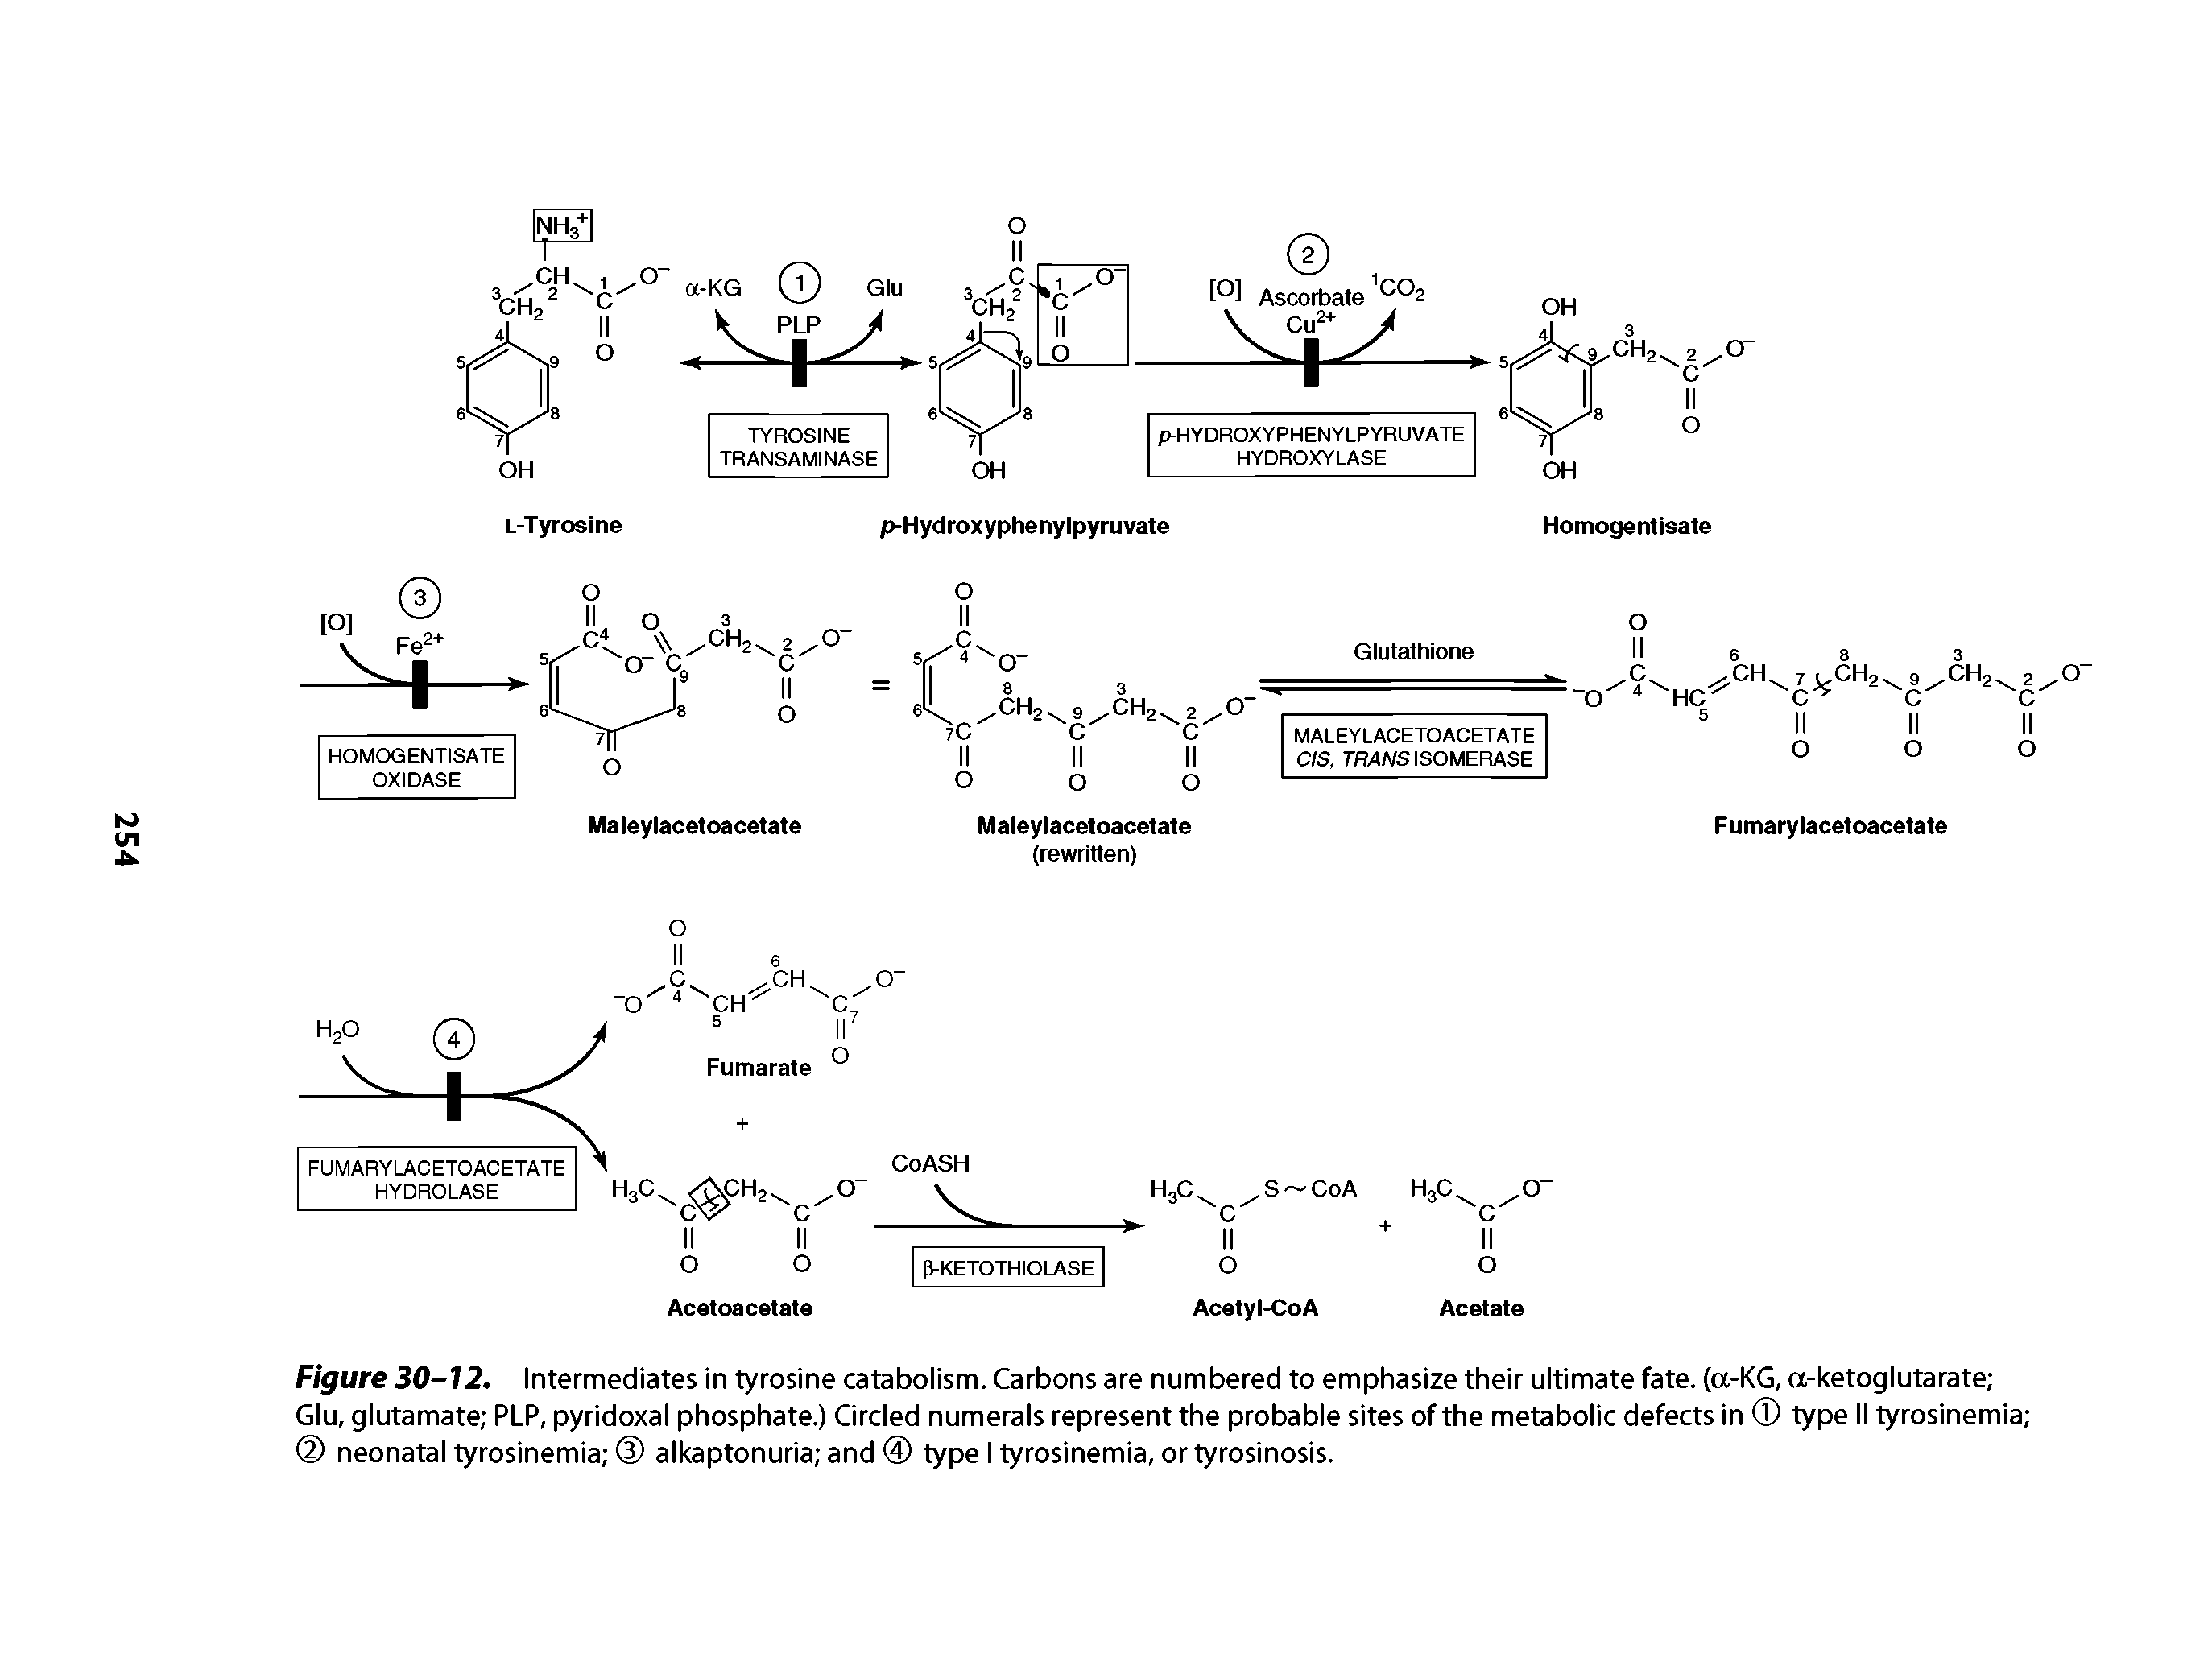 "Figure 30-12. Intermediates in <a href=""/info/tyrosine_catabolism"">tyrosine catabolism</a>. Carbons are numbered to emphasize their <a href=""/info/ultimate_fate"">ultimate fate</a>. (a-KG, a-ketoglutarate Glu, glutamate PLP, <a href=""/info/plp_pyridoxal_phosphate"">pyridoxal phosphate</a>.) Circled numerals represent the probable sites of the metabolic defects in type II <a href=""/info/neonatal_tyrosinemia"">tyrosinemia neonatal</a> tyrosinemia alkaptonuria and 0 type I tyrosinemia, or tyrosinosis."